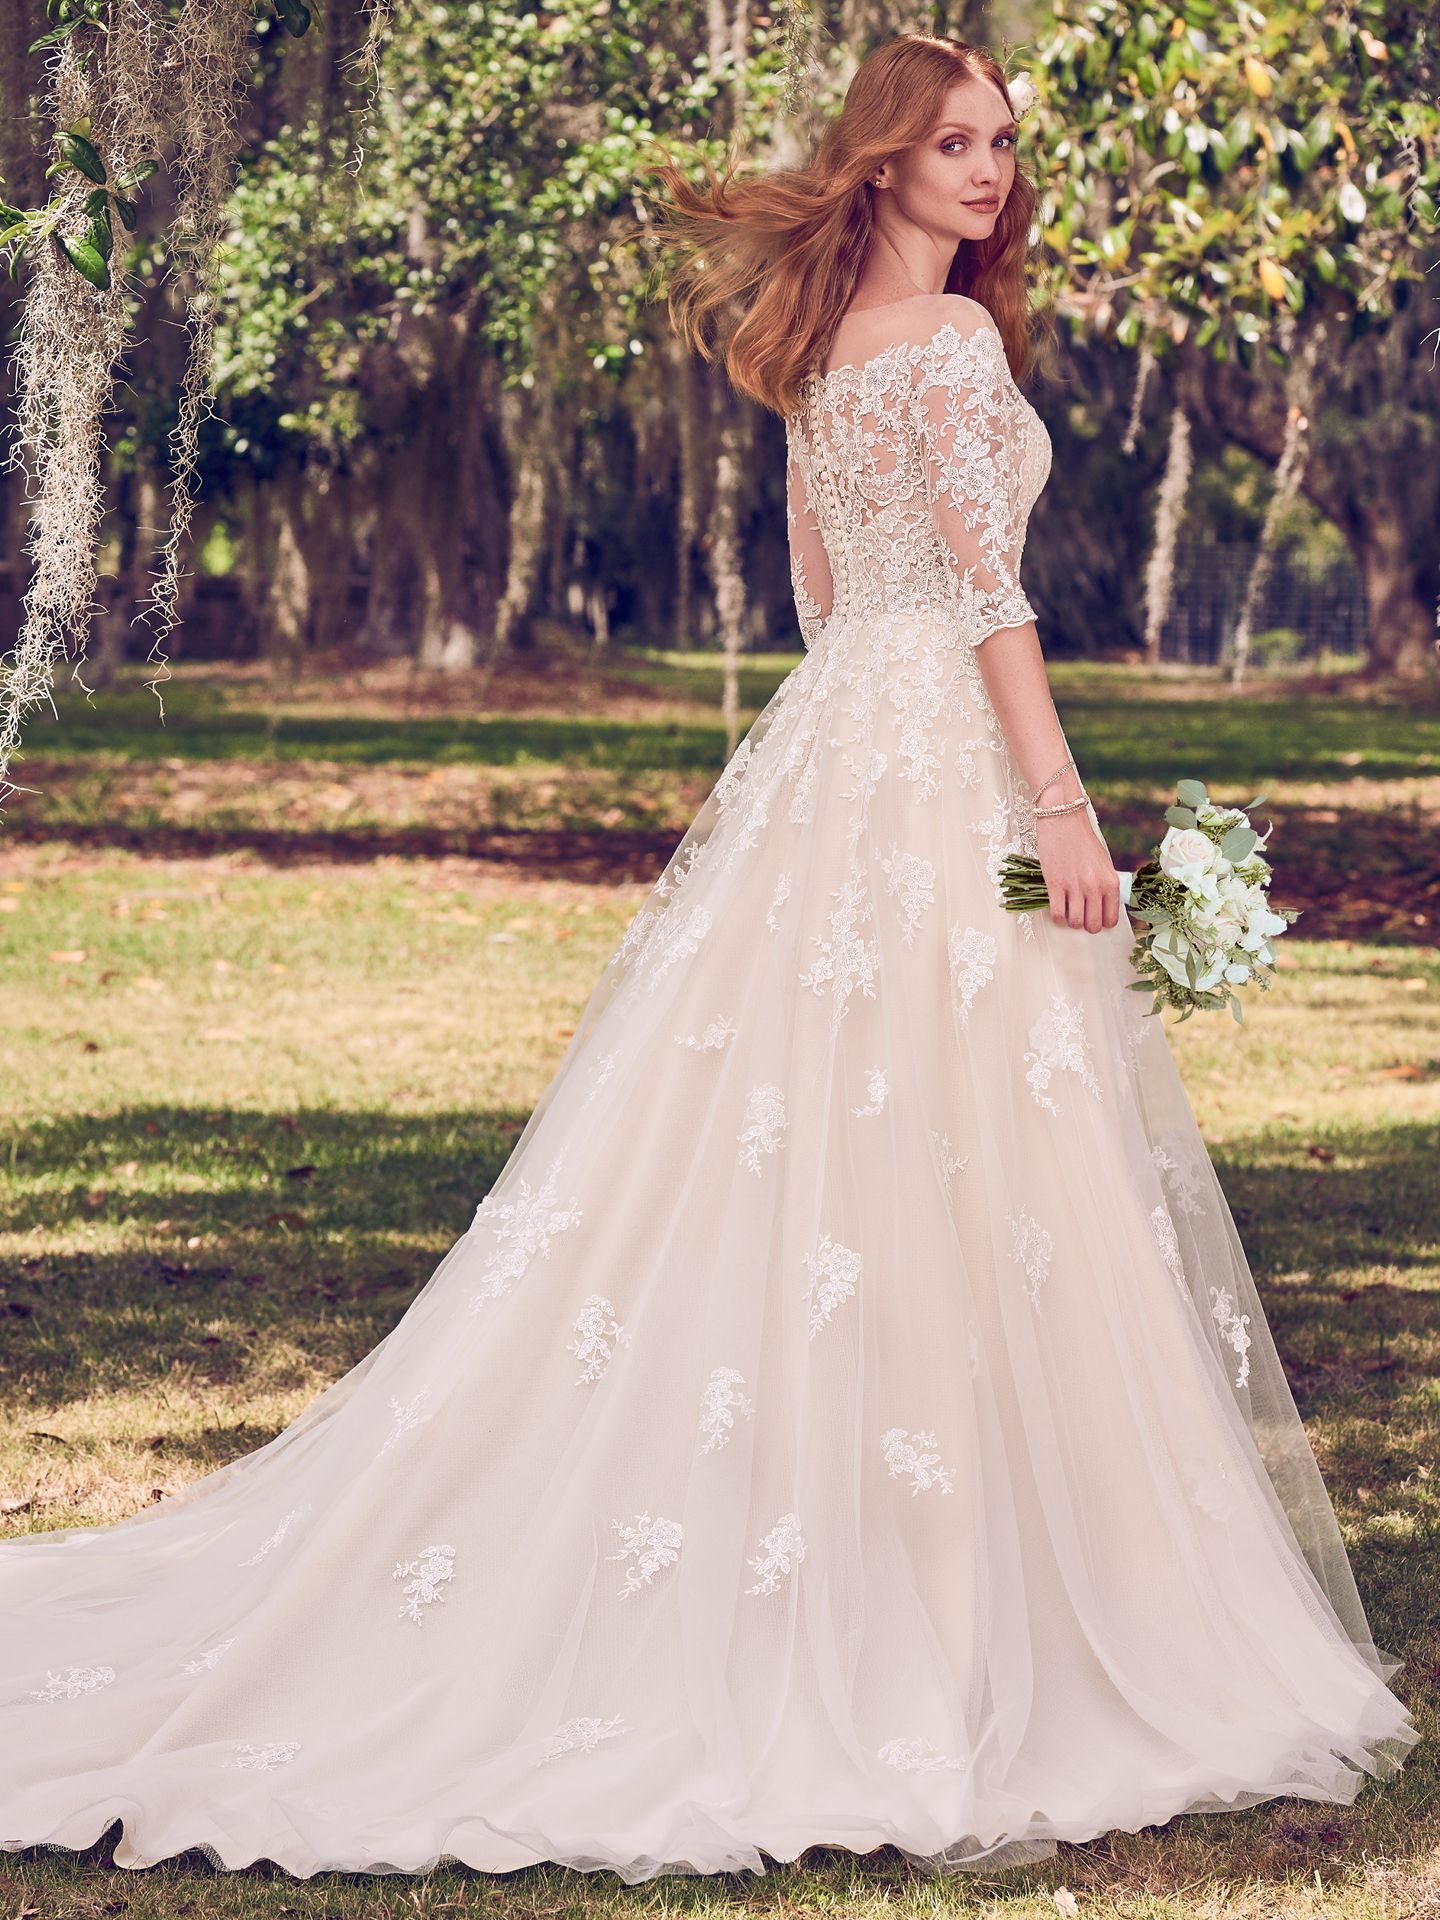 Scalloped illusion off the shoulder neckline on subtly sexy wedding dress Bree by Maggie Sottero